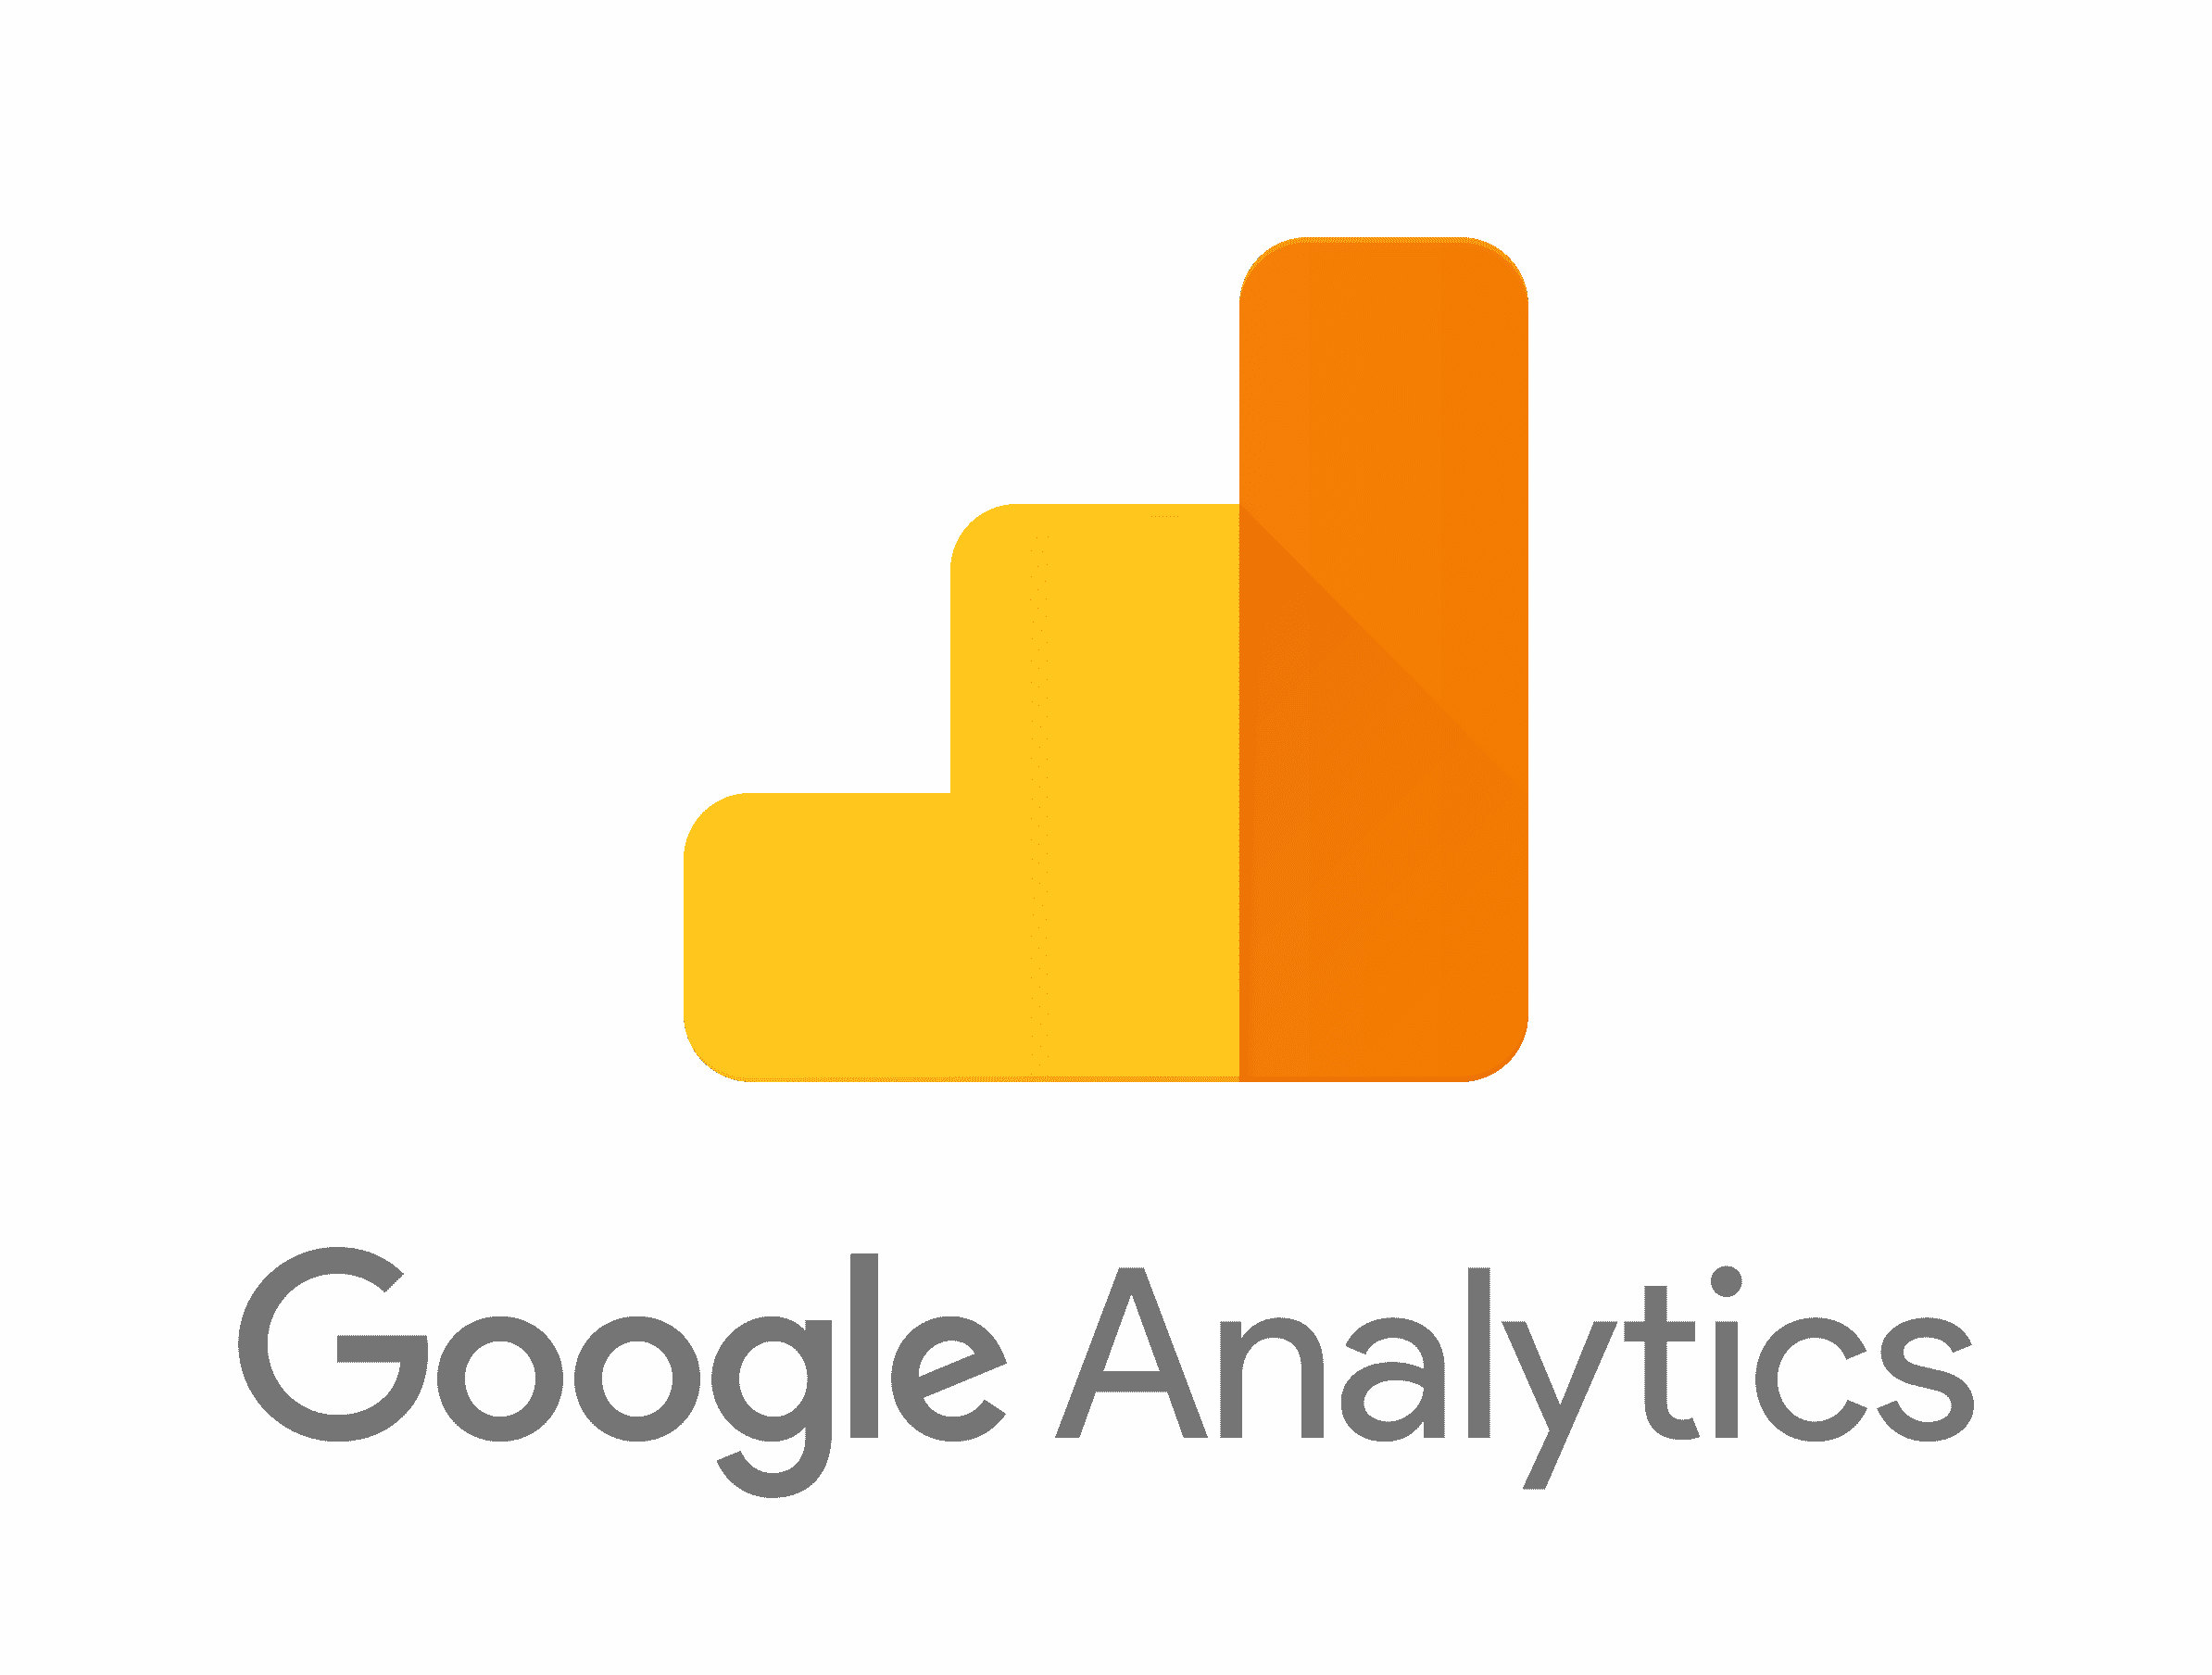 TrueMetrics – Digital Analytics San Francisco, San Jose